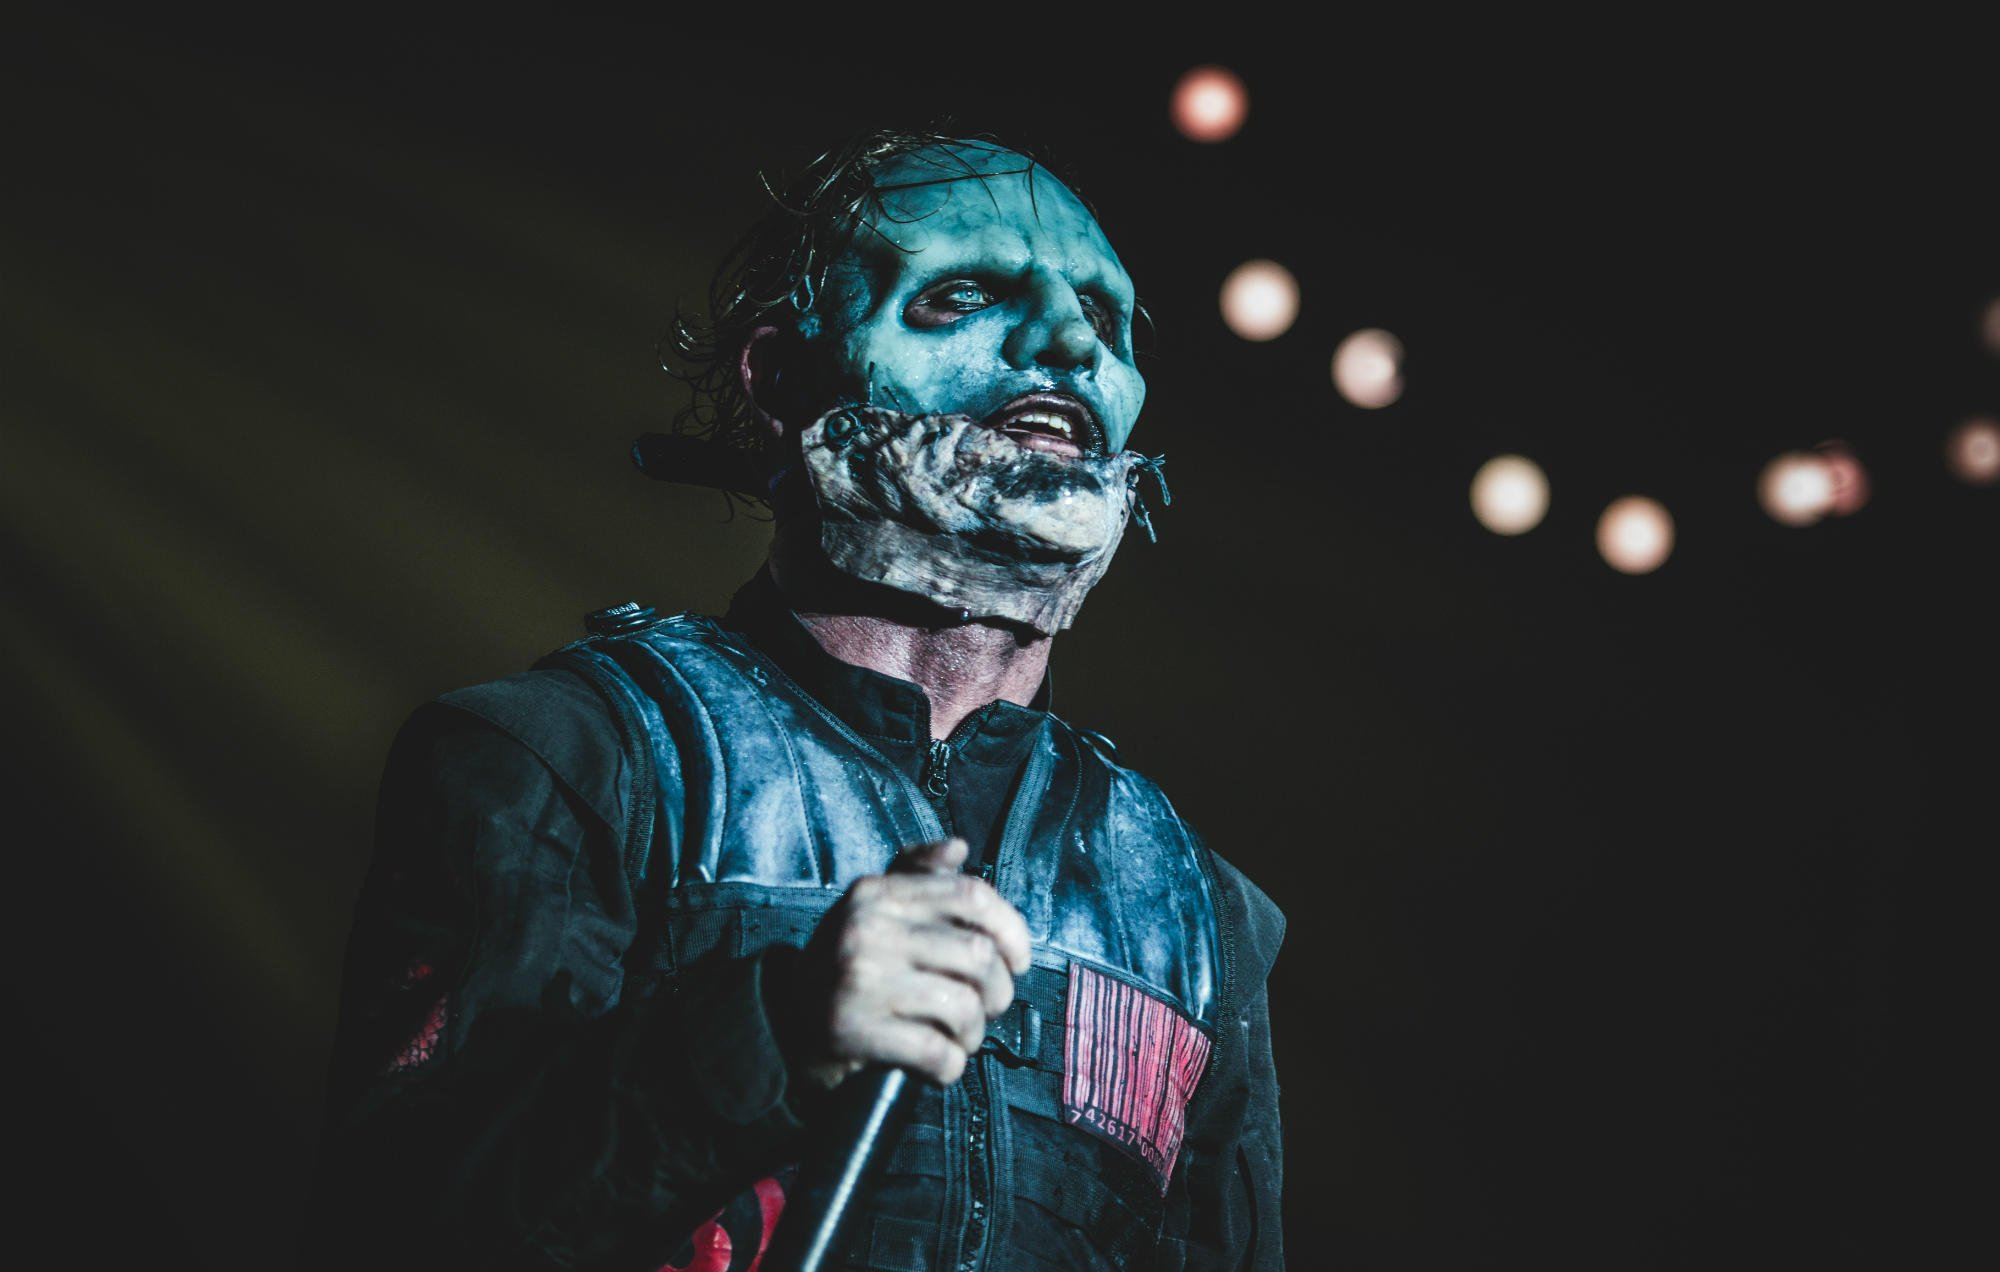 Corey Taylor reveals when to expect new @slipknot album https://t.co/FhSB0Wdgkh https://t.co/JsQlo1Ficl